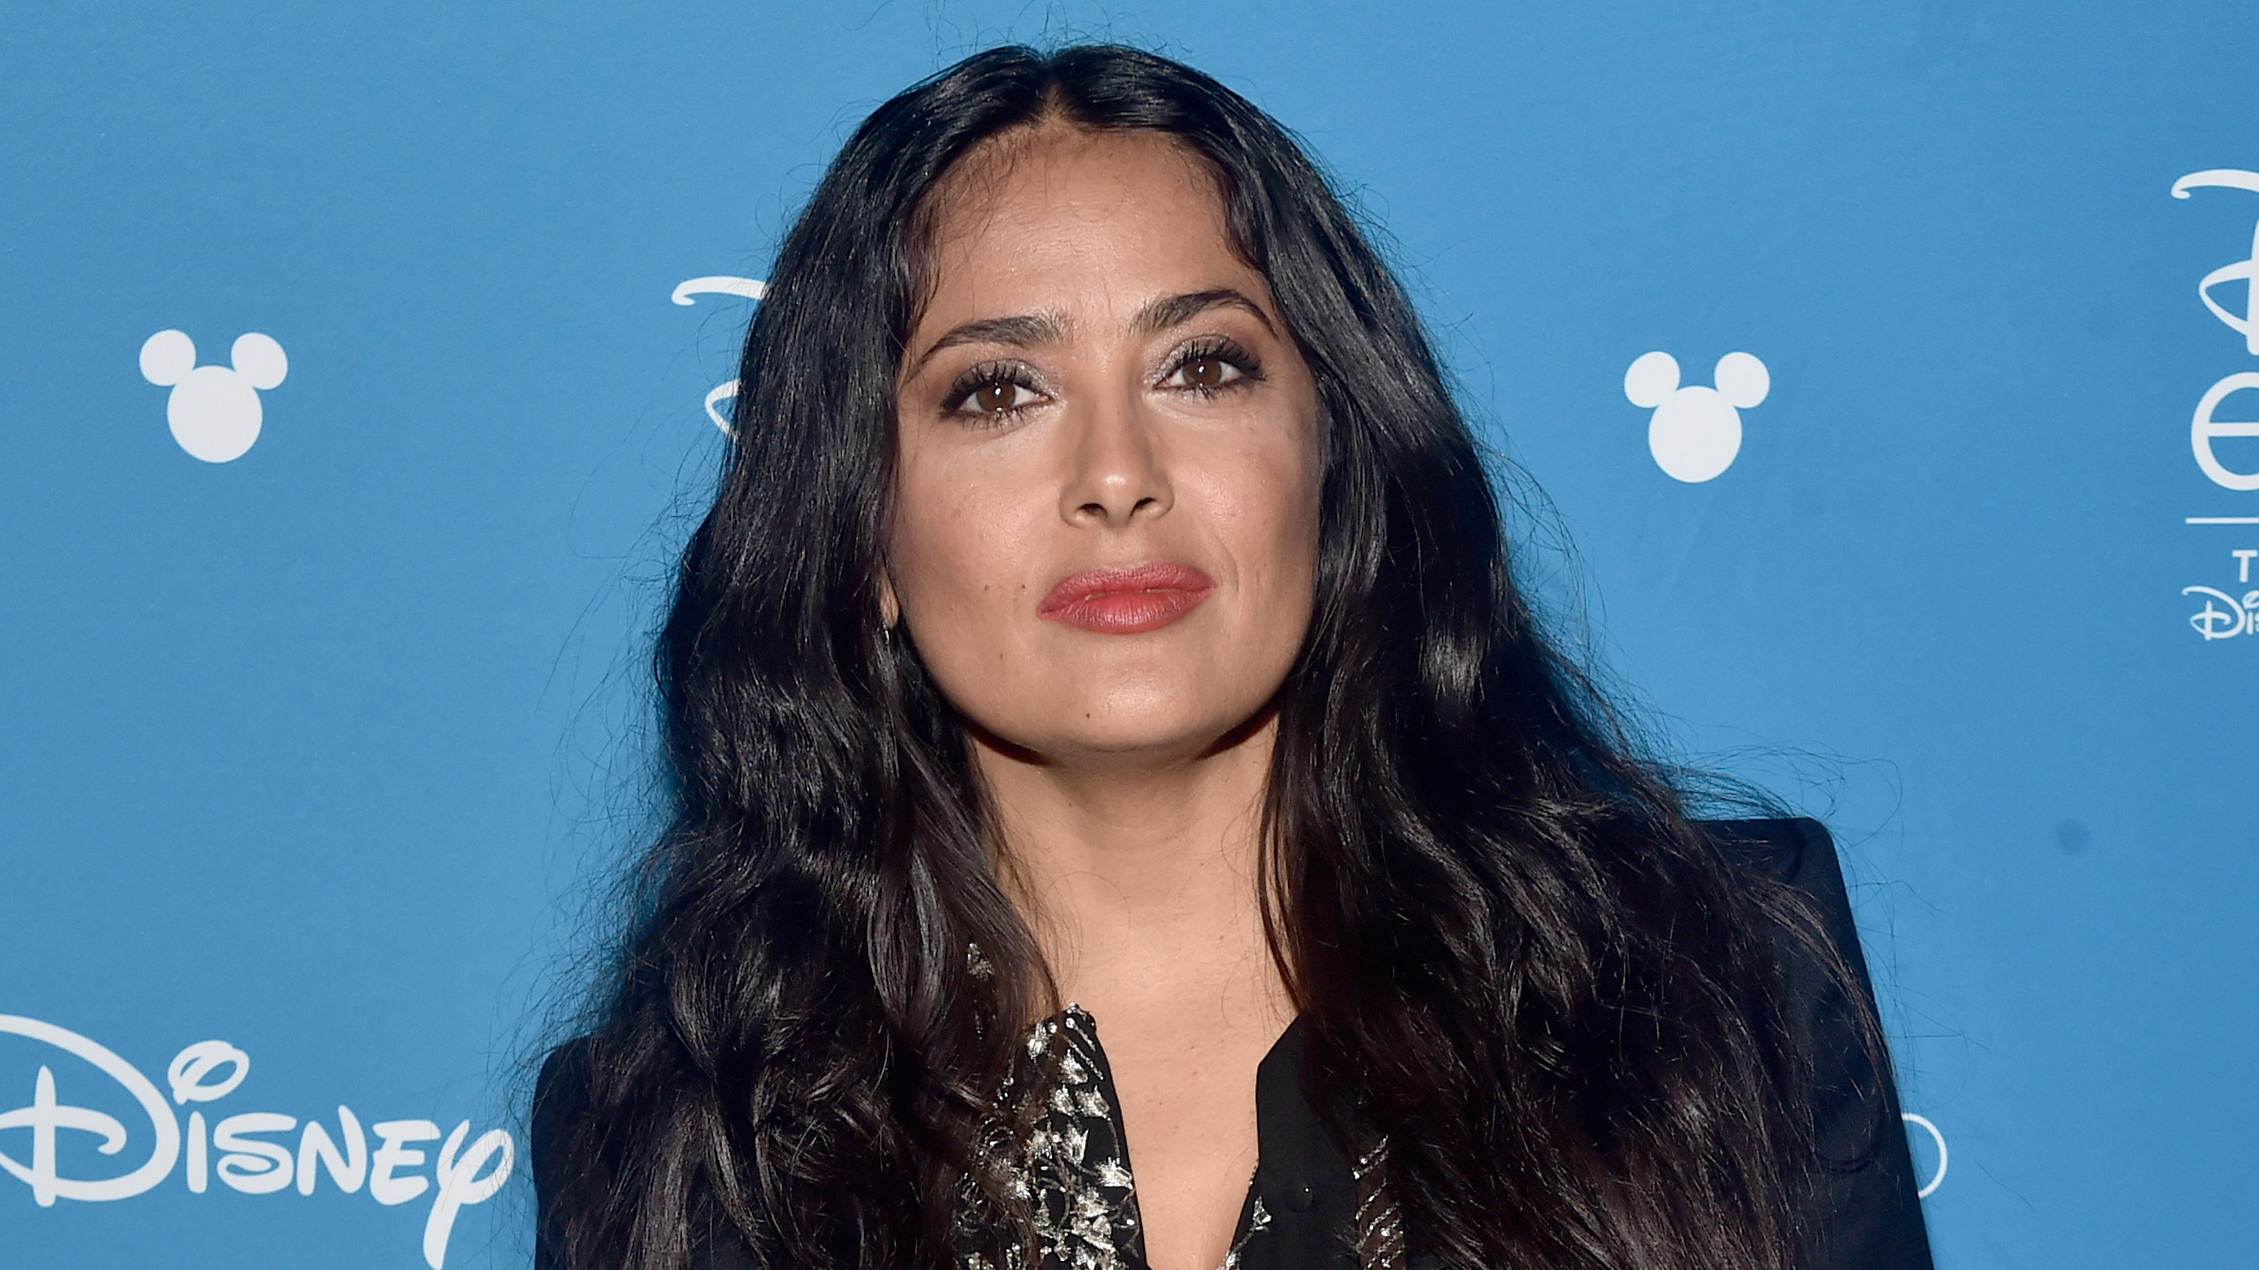 Westlake Legal Group salma Salma Hayek swears off cosmetic surgery after trying lip injections for movie role Jessica Napoli fox-news/health/beauty-and-skin/cosmetic-surgery fox-news/entertainment/style fox-news/entertainment/celebrity-news fox news fnc/entertainment fnc article 27115ef5-fc3a-5c49-bd9f-b8404c0df345